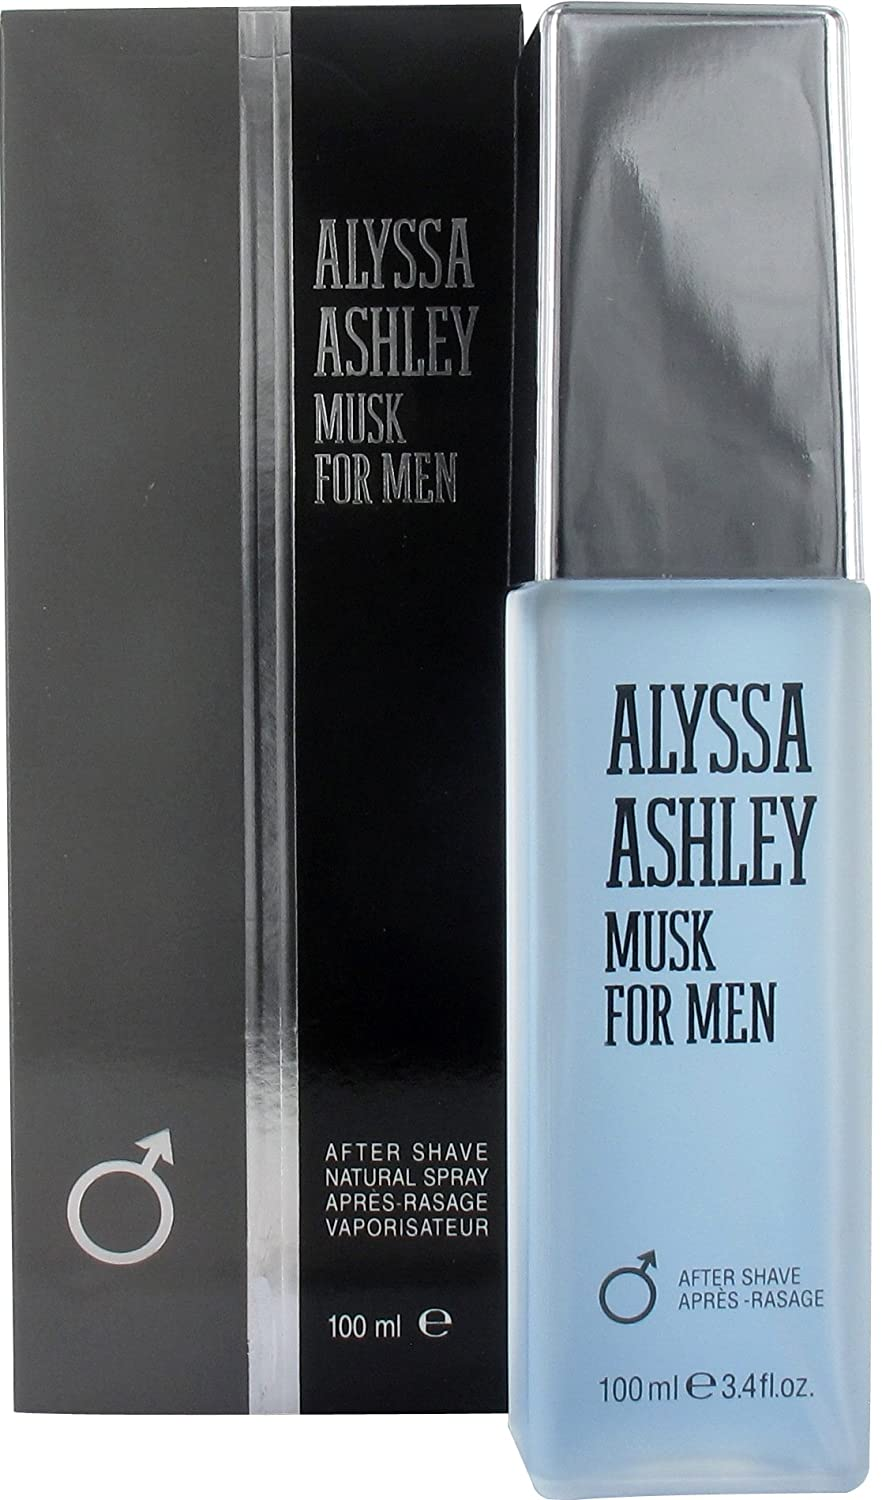 Musk After Shave 100 ml Dopo Barba Spray Uomo Alyssa Ashley Italy NLP126120